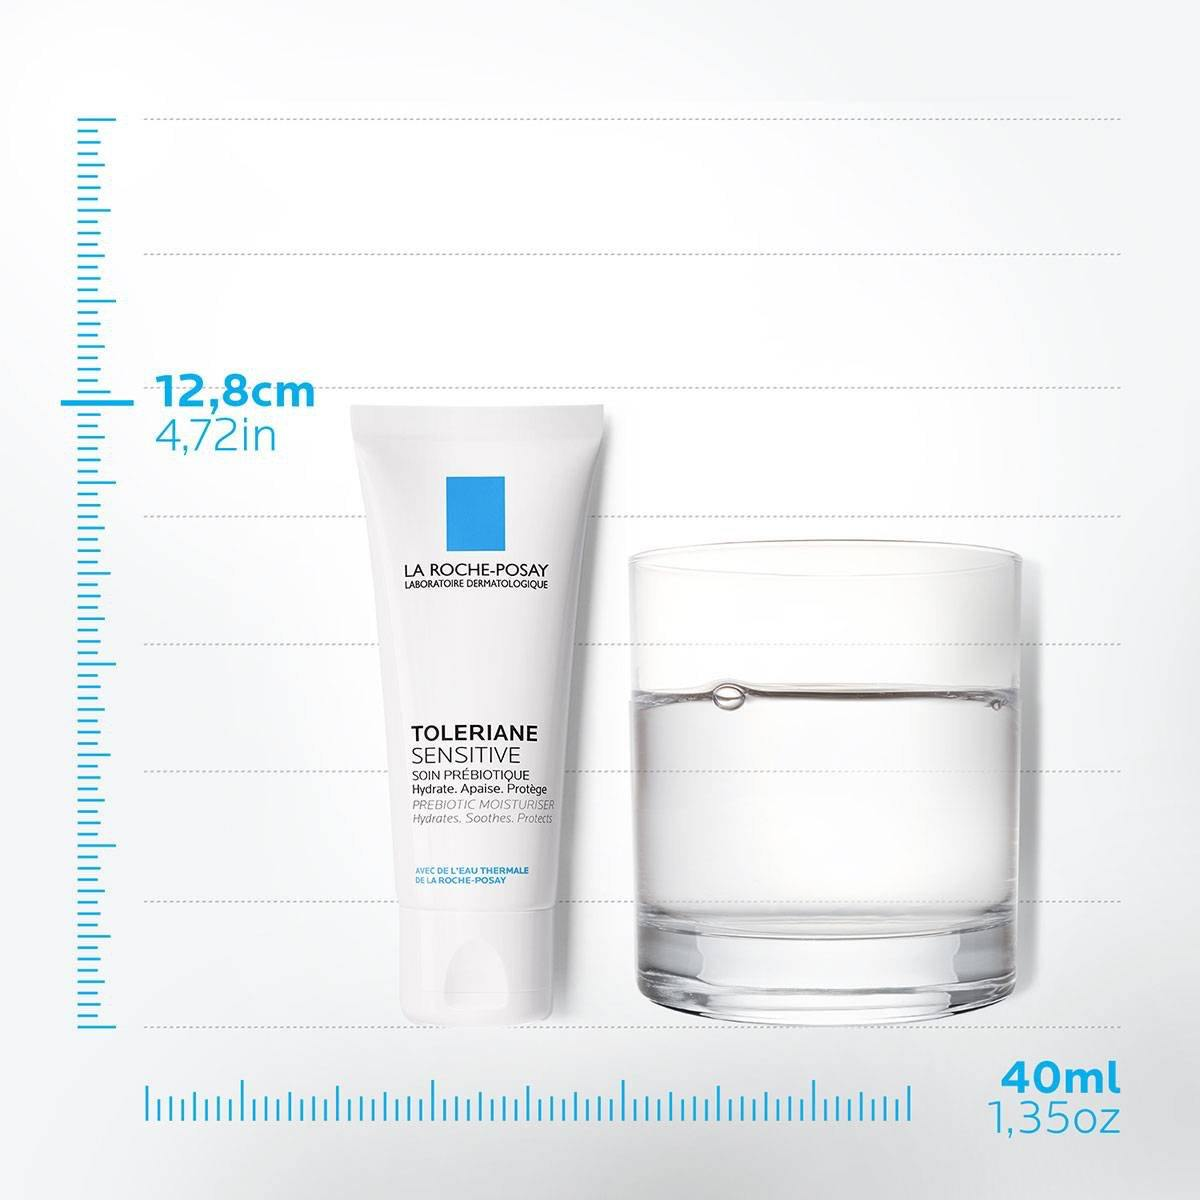 Hidratante Facial La Roche-Posay Toleriane Sensitive 40ml